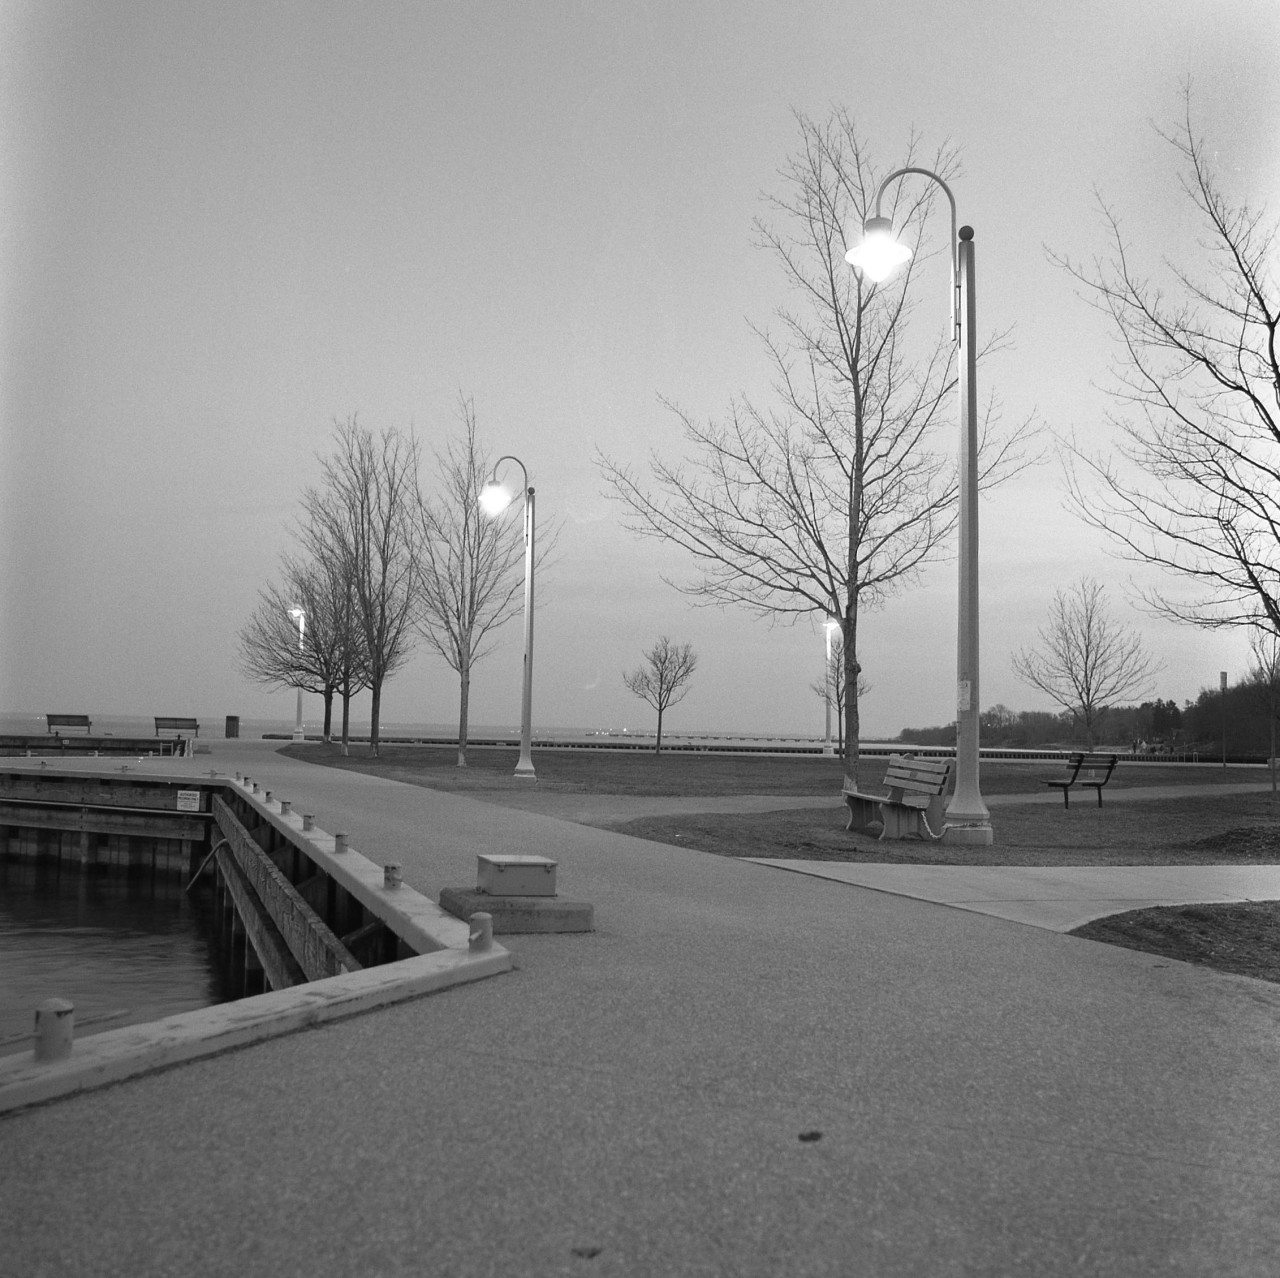 Bronte Marina at Dusk. Ultrafine Xtreme 400 in D76 stock for 5.5 min at 20C.